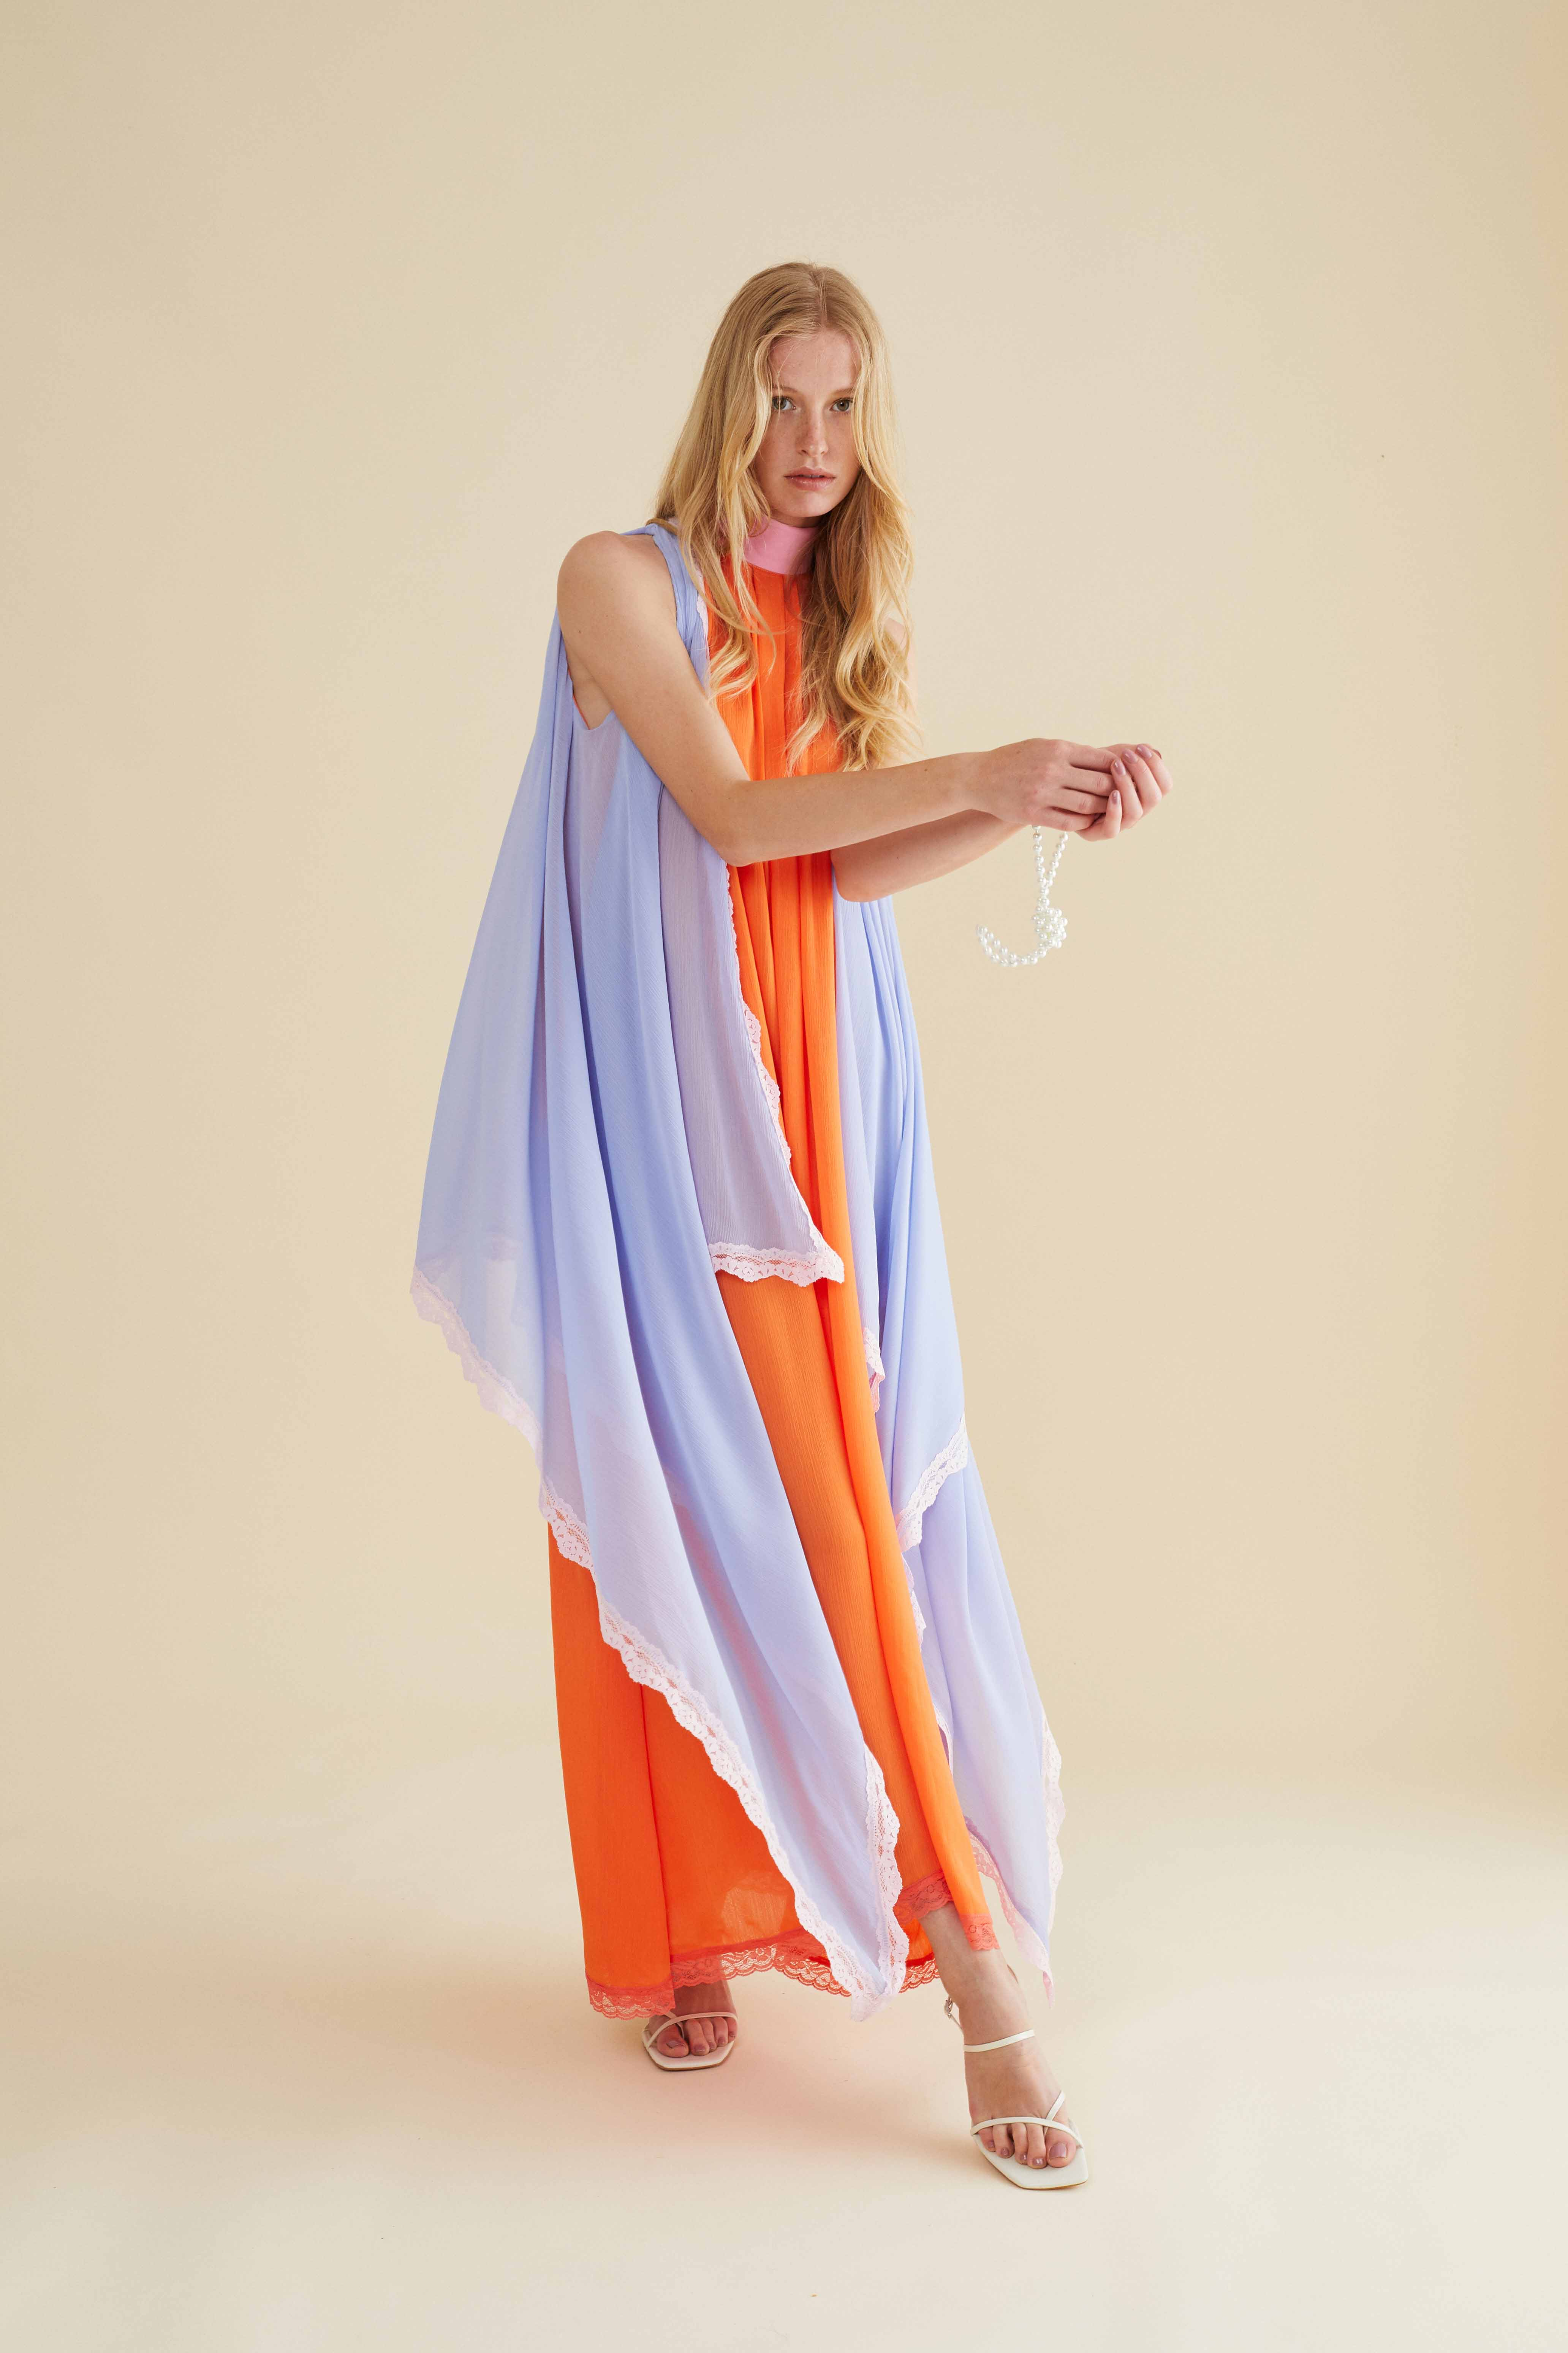 Feria Dress - Orange and Pink by Berta Cabestany on curated-crowd.com